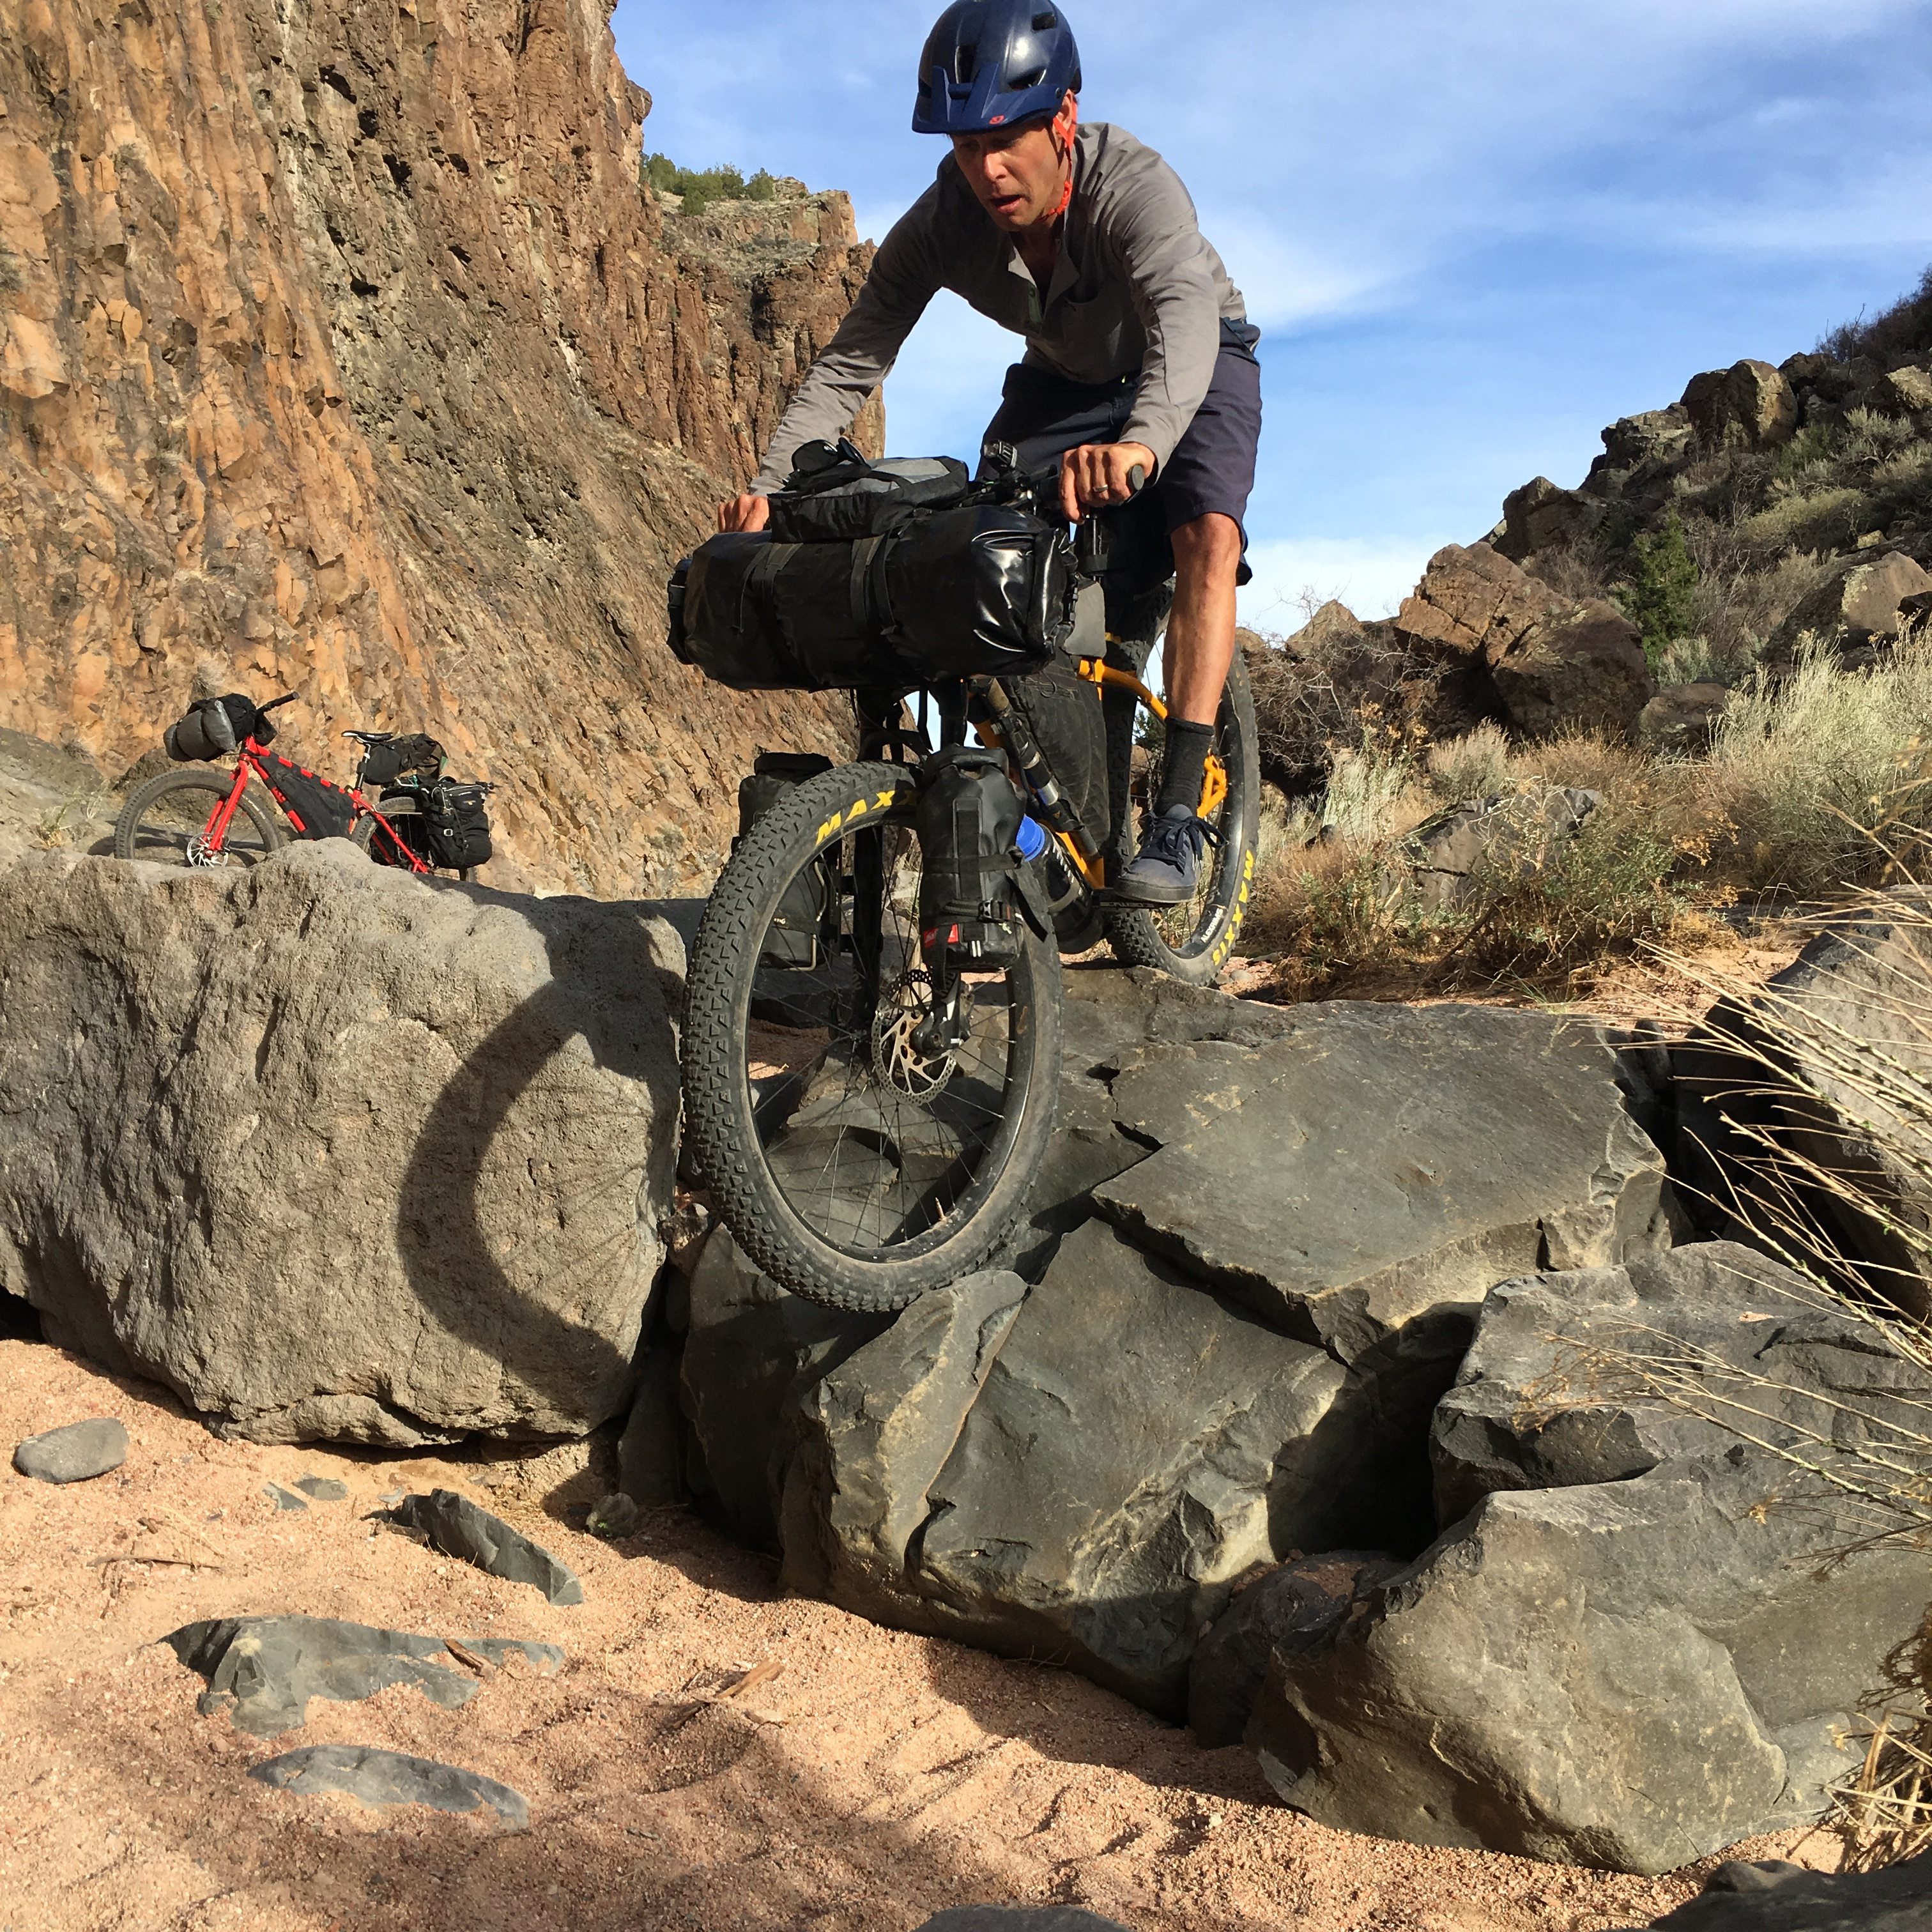 Front view of a cyclist riding down a rock in a desert canyon with riderless bike behind